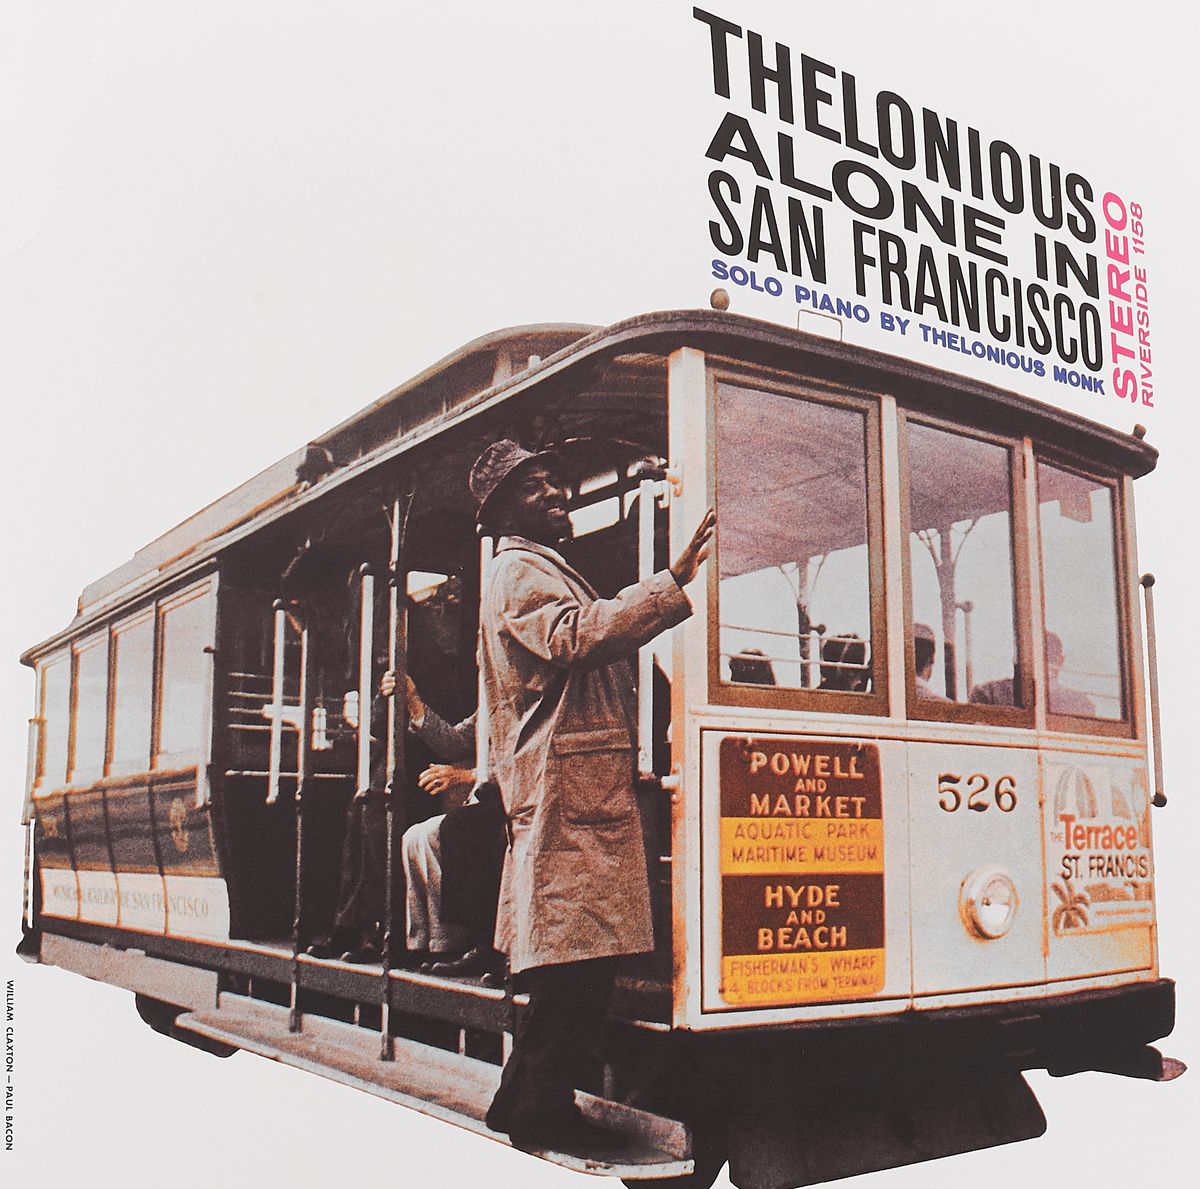 Телониус Монк Thelonious Monk. Alone In San Francisco (LP) виниловая пластинка monk thelonious misterioso